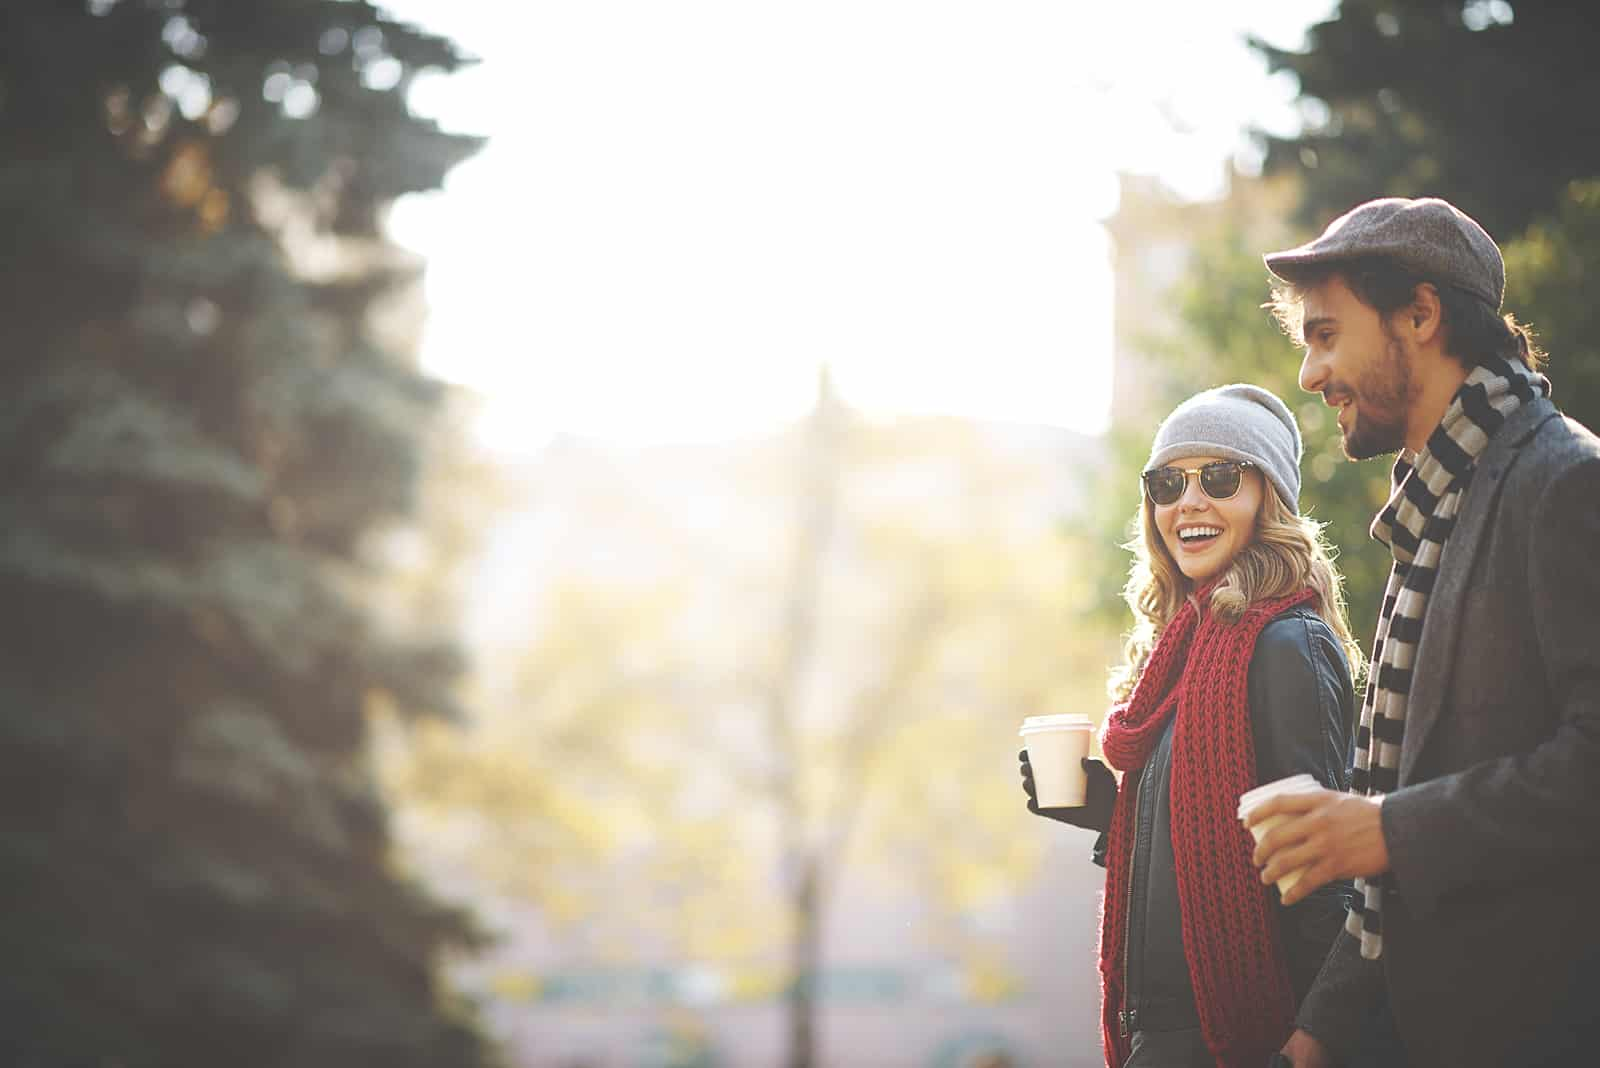 a smiling woman walking with a man and carrying coffee on a date